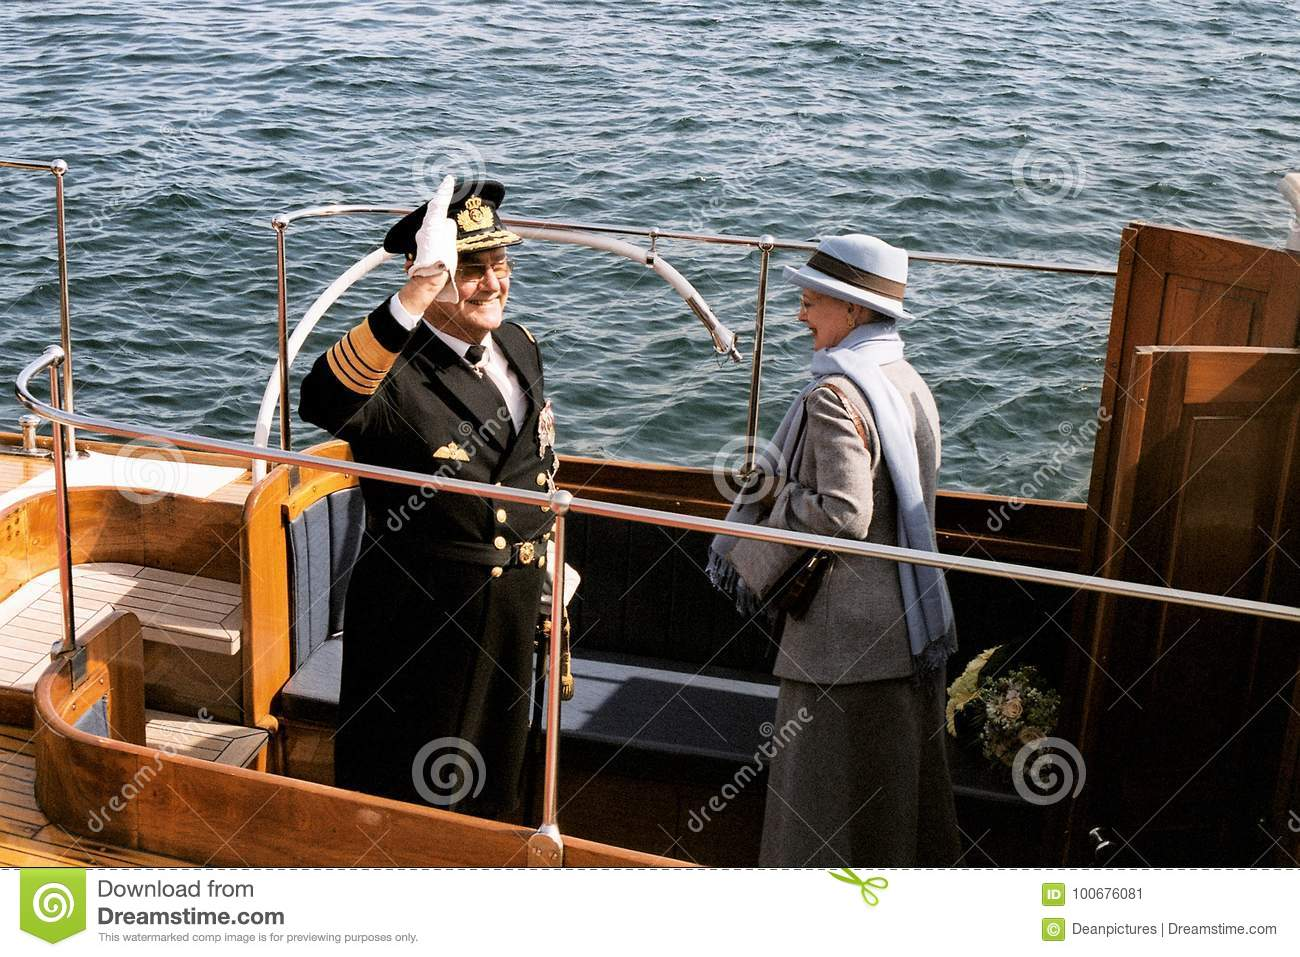 QUEEN MARGRETHE II AND PRINCE HENRIK OF DENMARK